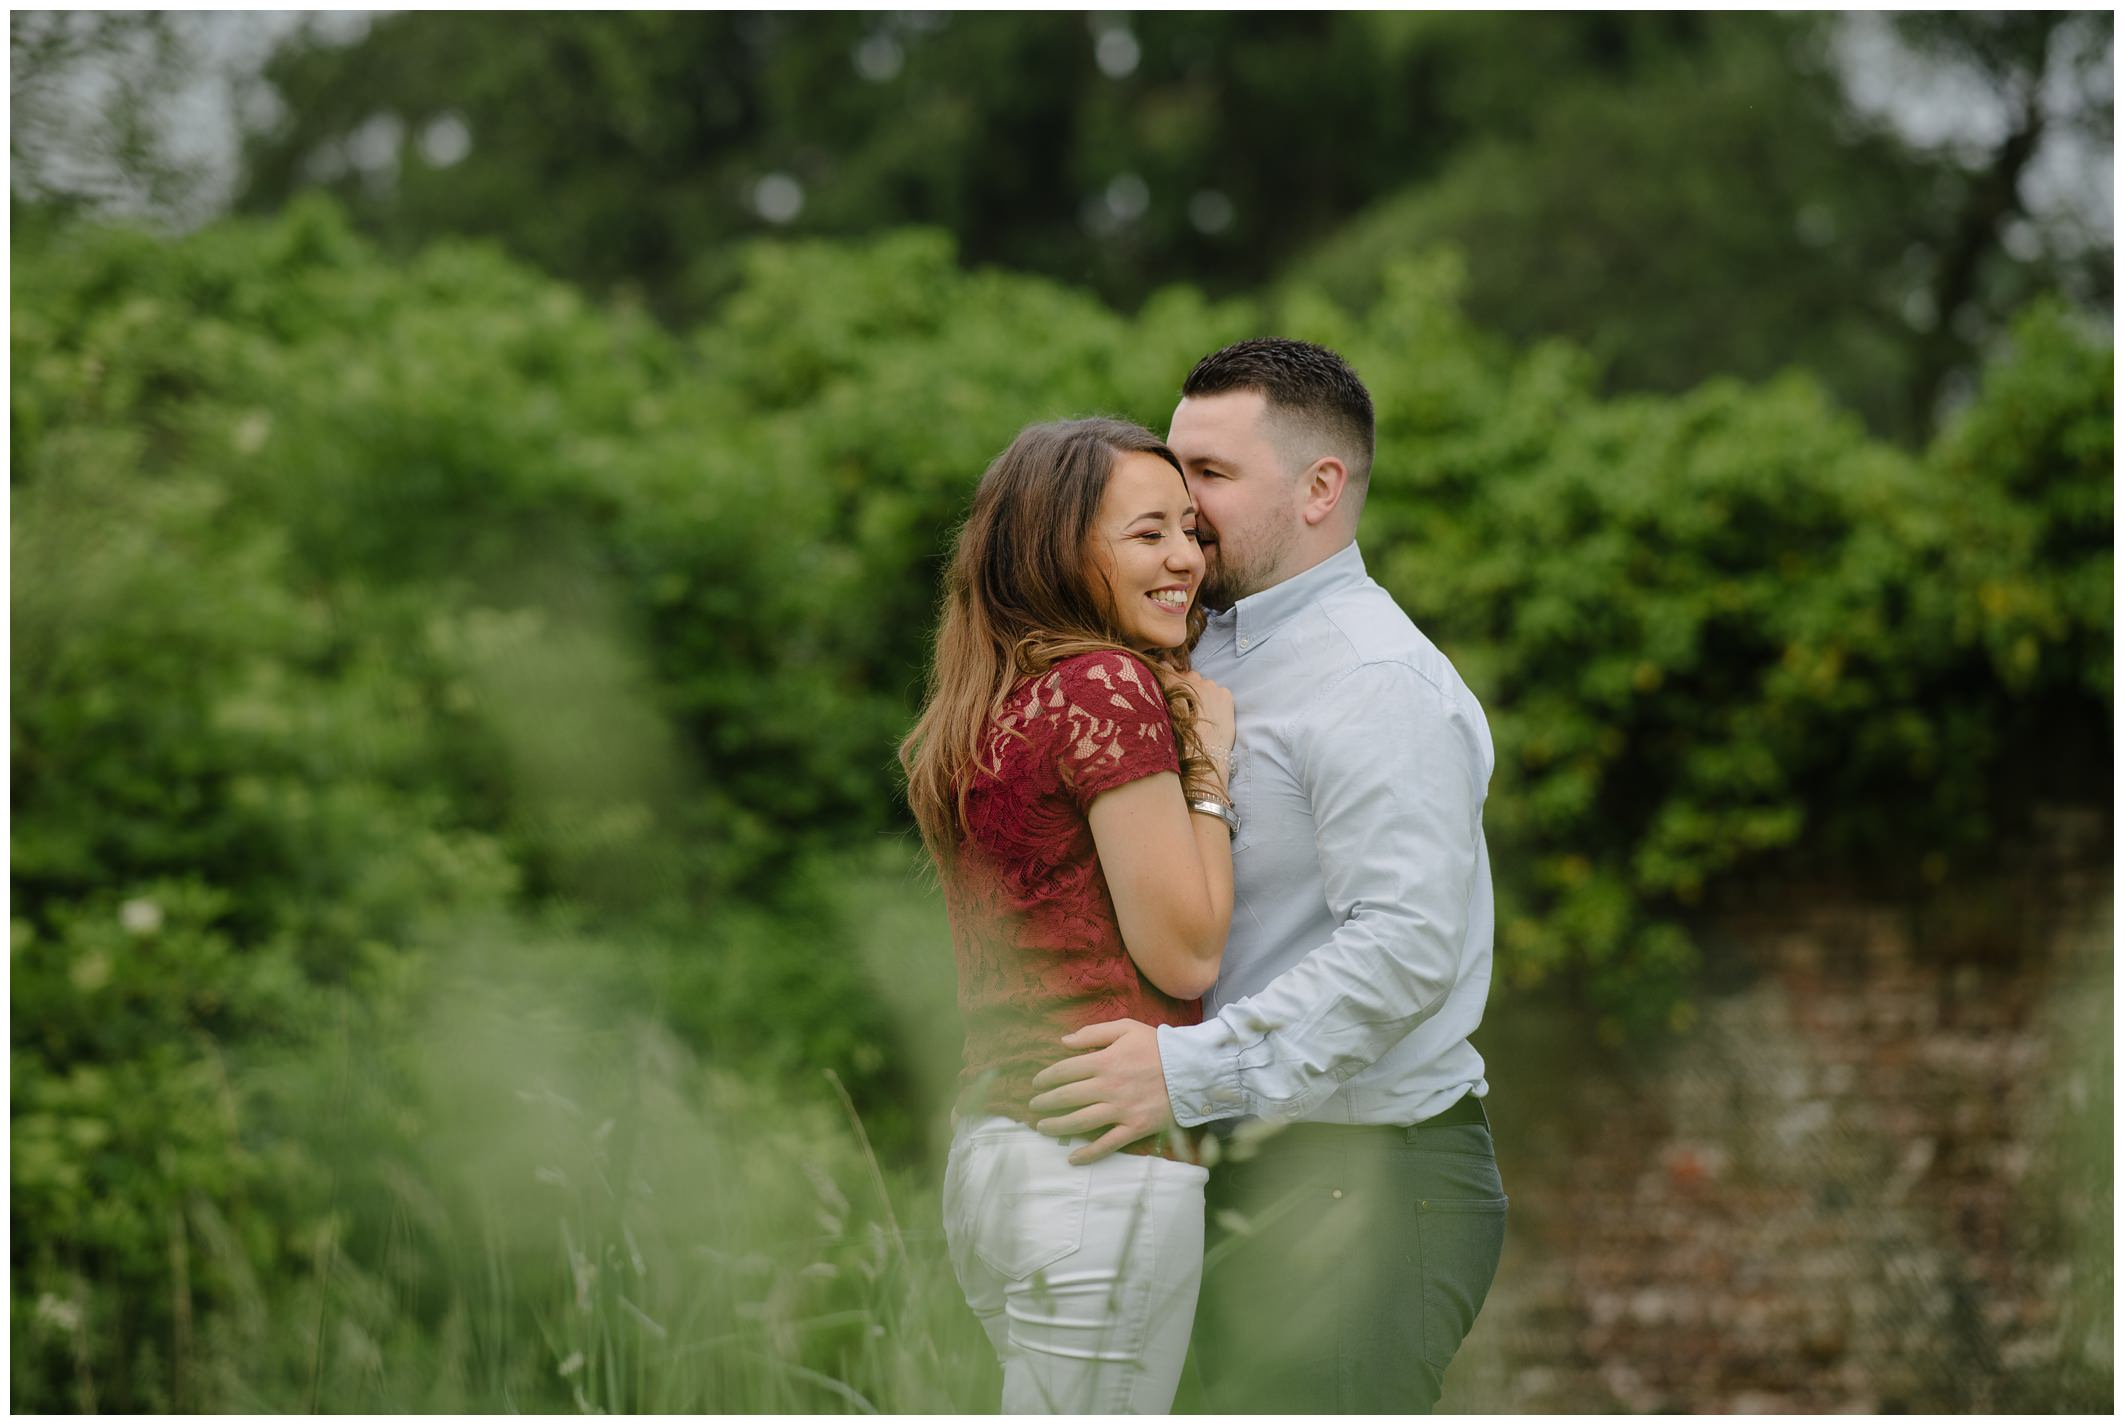 couple_shoot_seskinore_forest_jude_browne_photography_0008.jpg